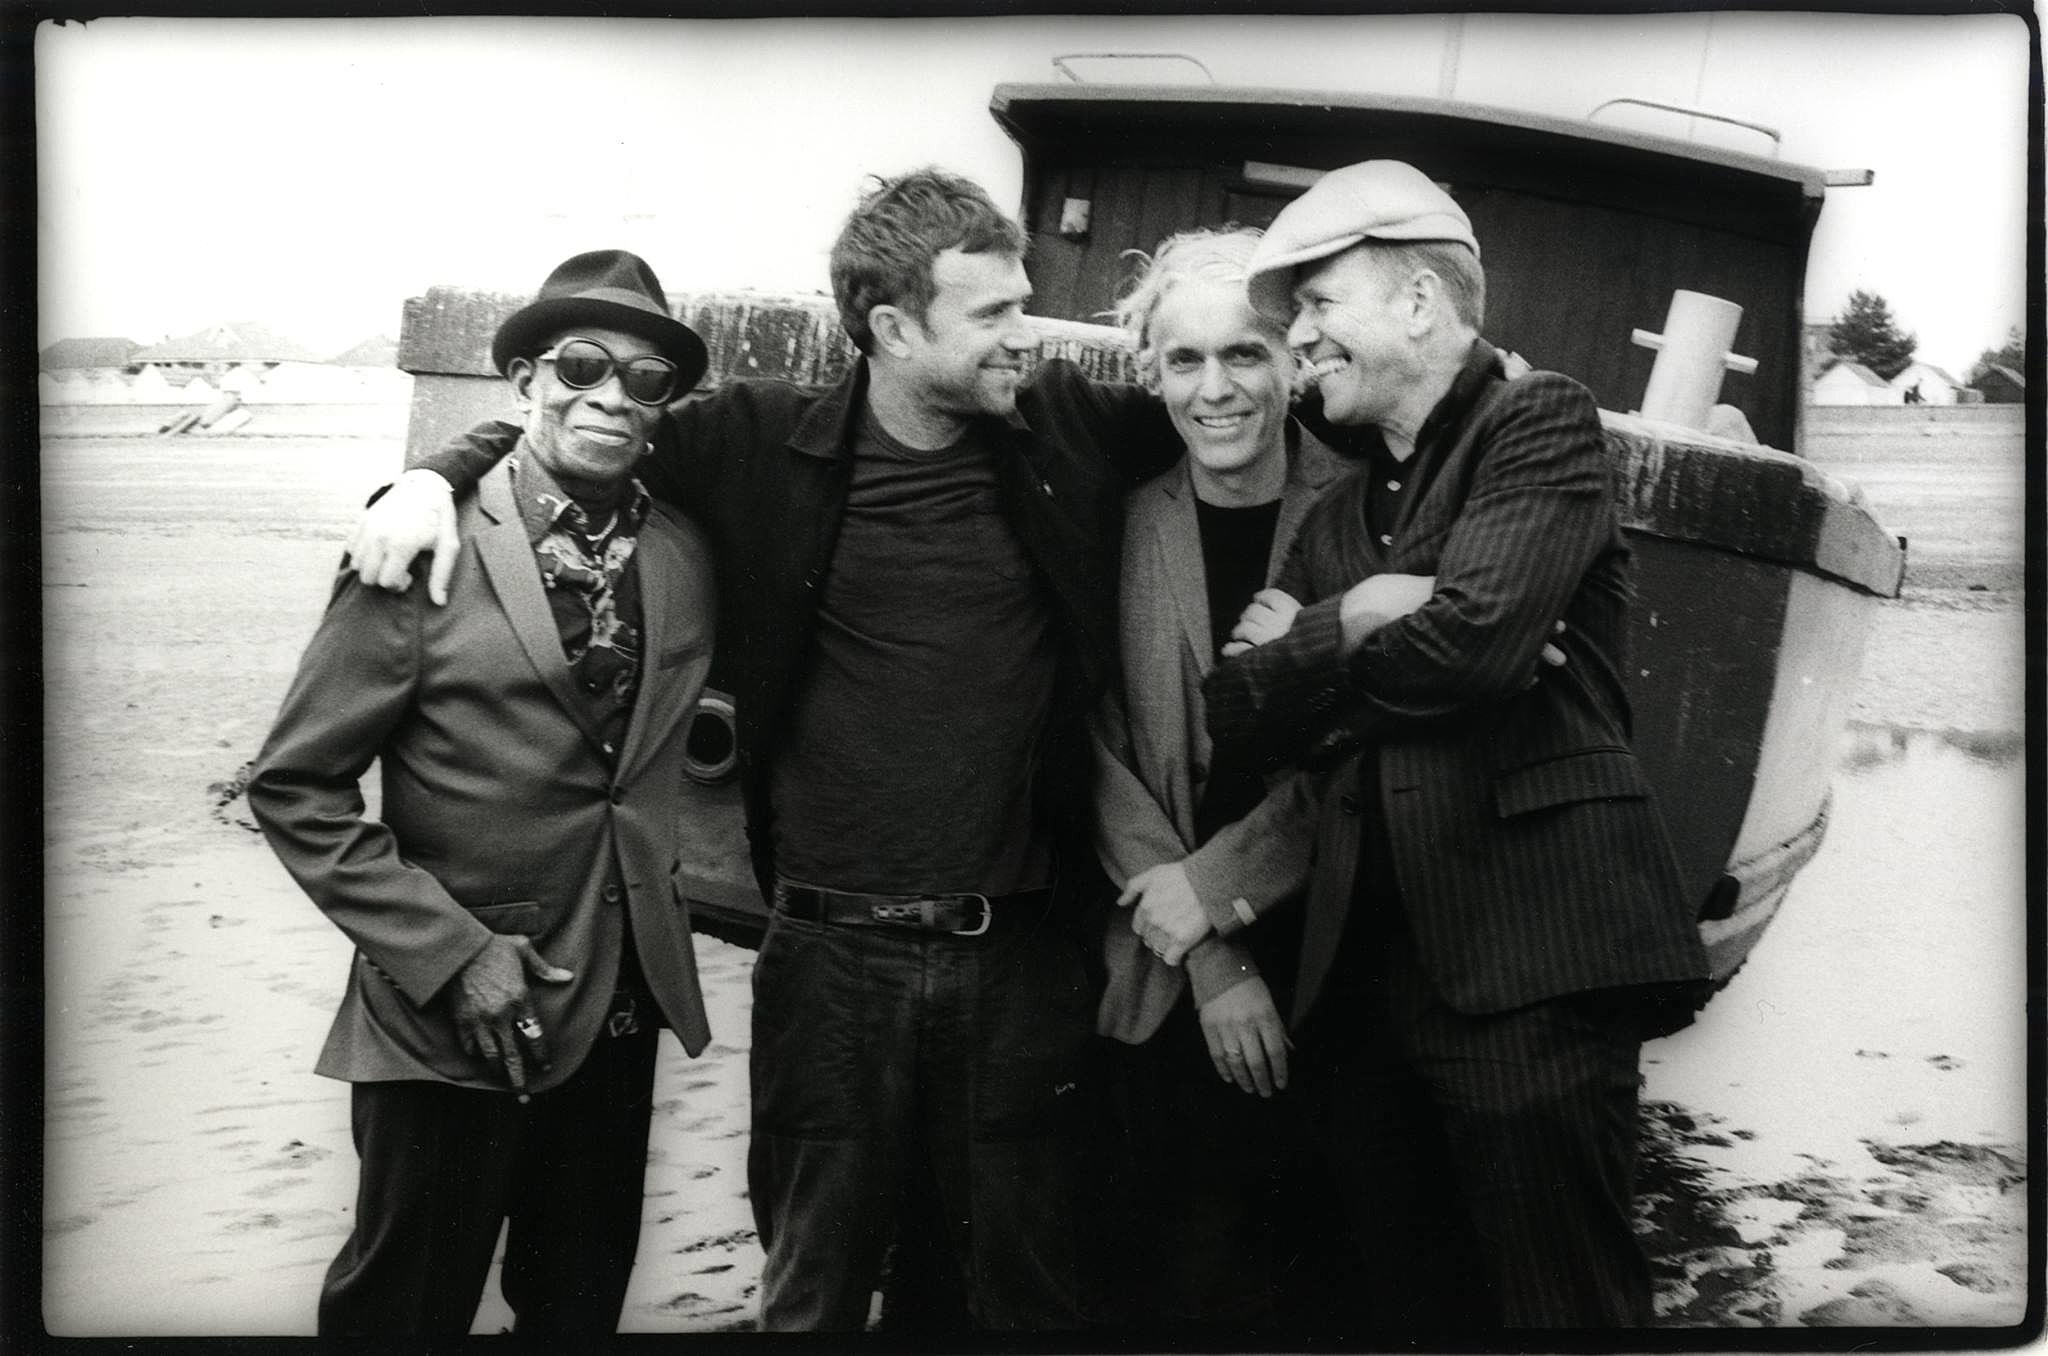 Damon Albarn (2nd from left) and Paul Simonon (right) with The Good The Bad & The Queen